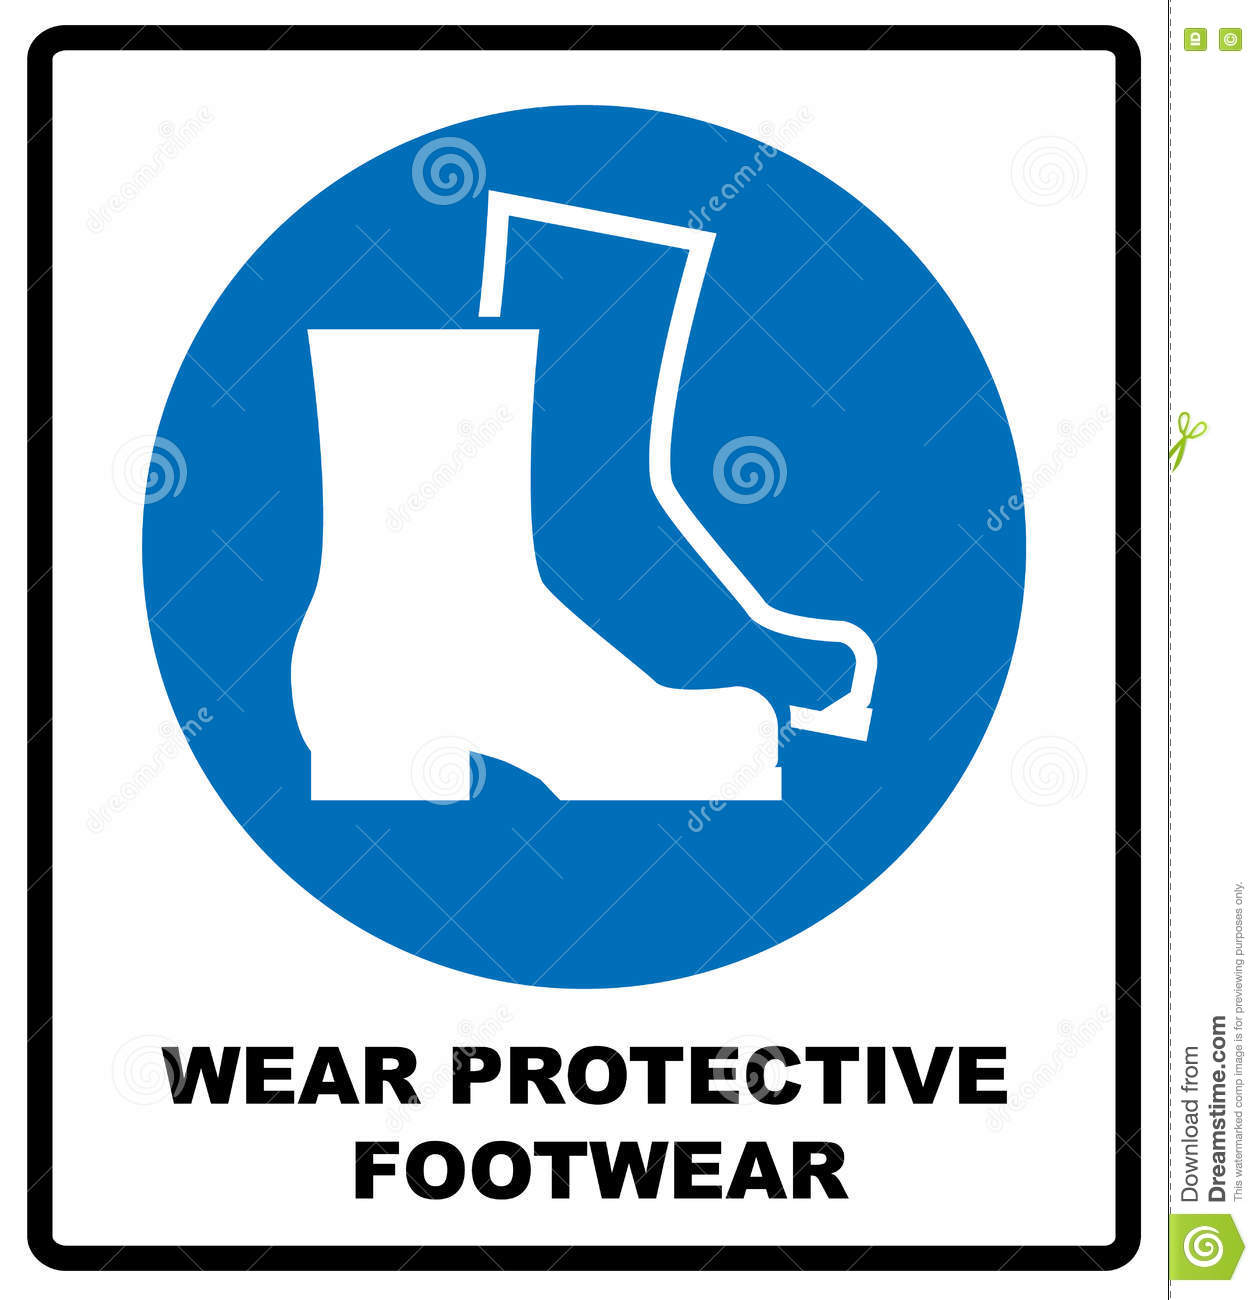 wear safety footwear protective safety boots must be worn